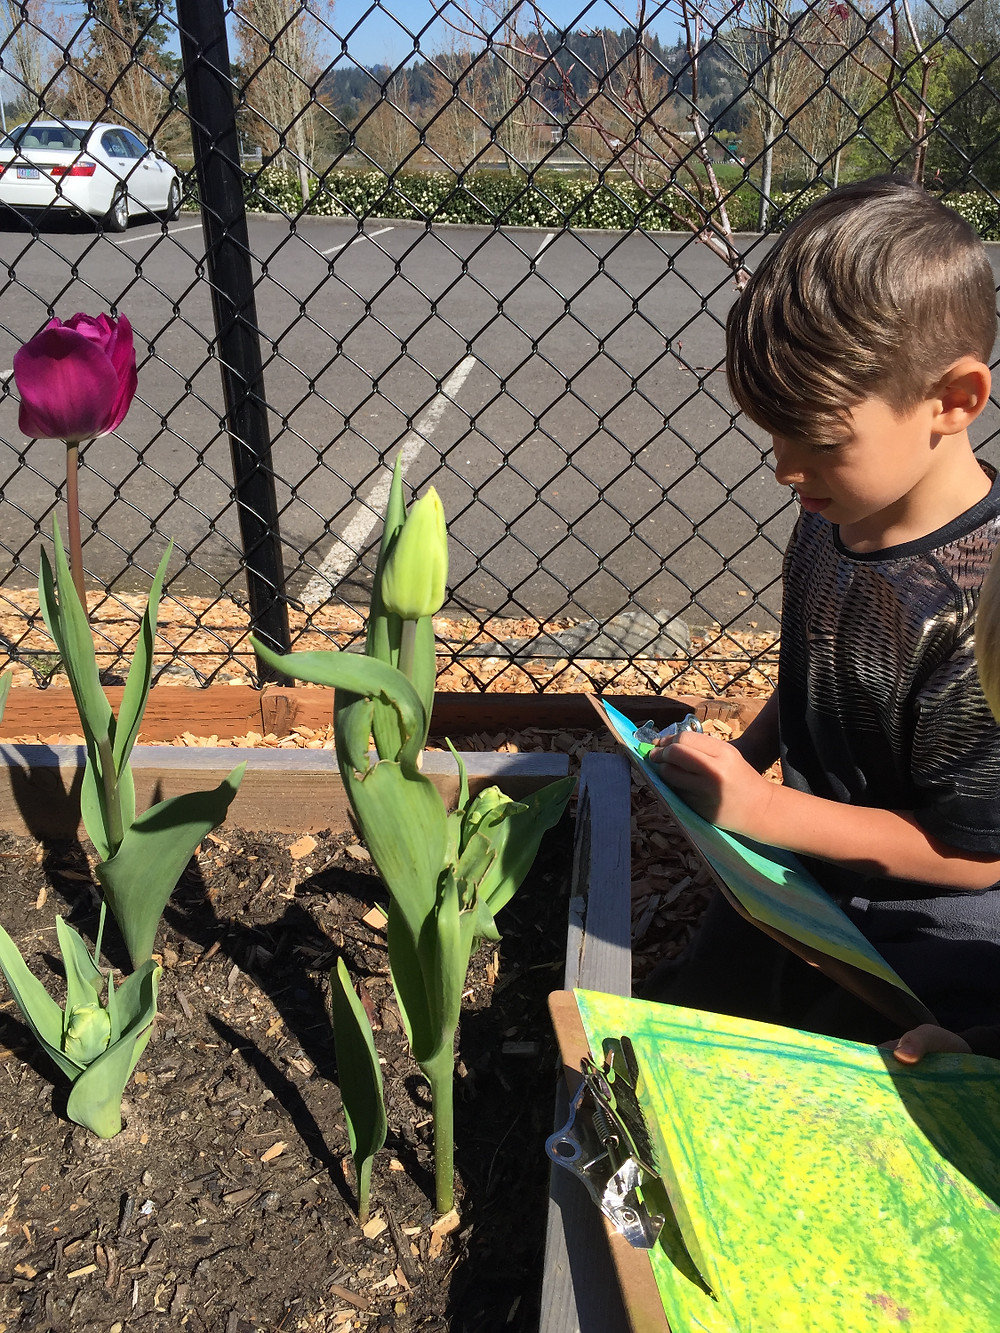 They did observational drawing of tulips on our playground.